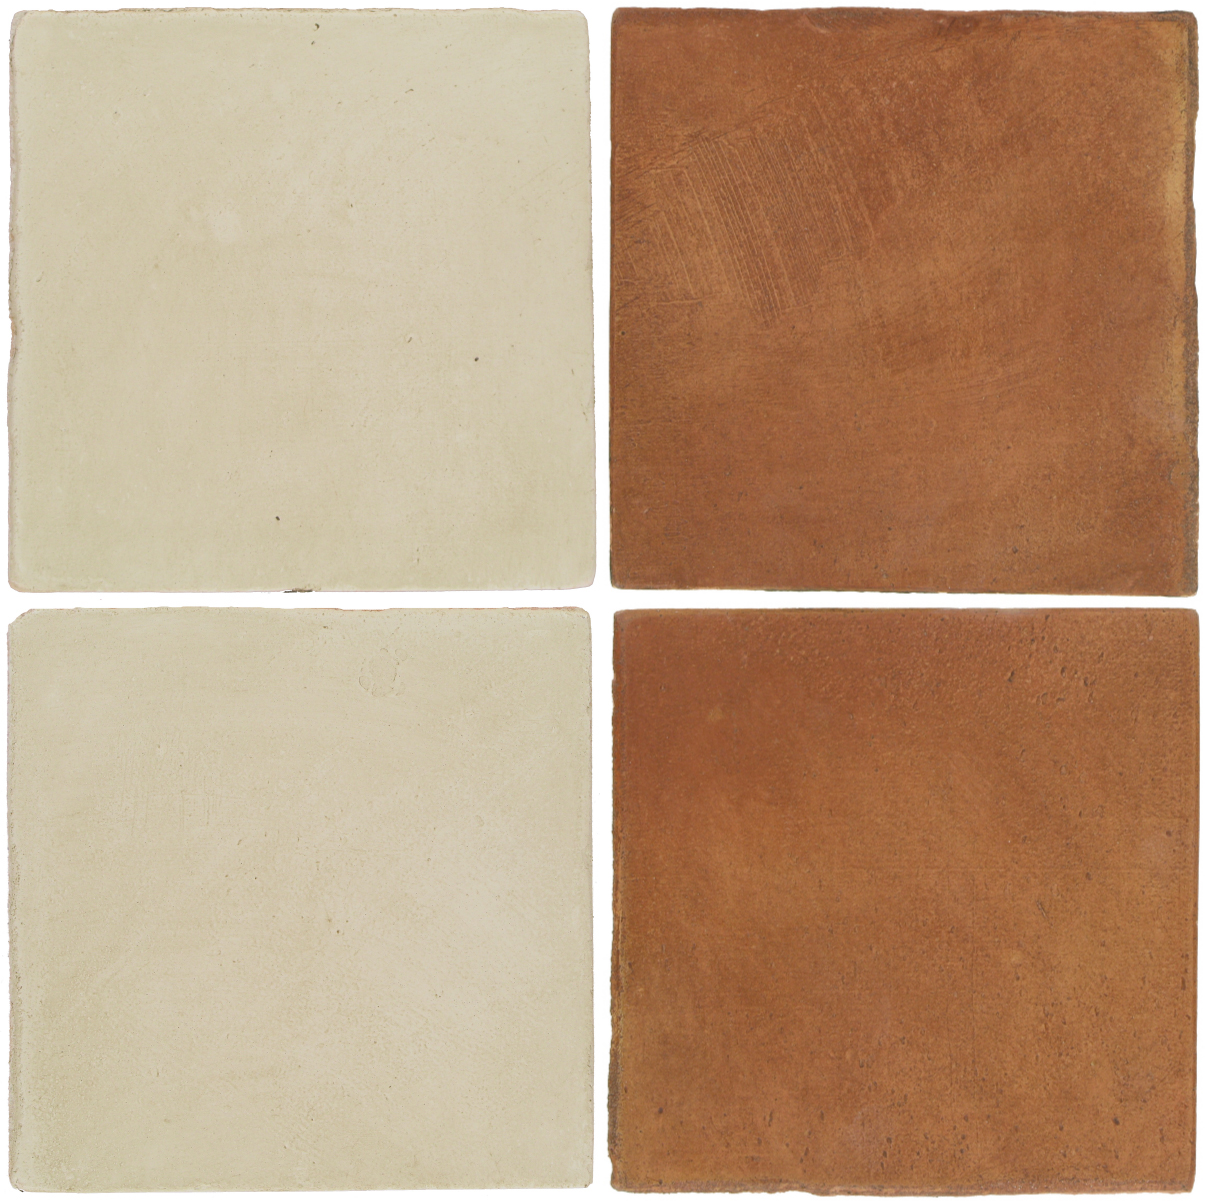 Pedralbes Antique Terracotta  2 Color Combinations  OHS-PGLW Glacier White + OHS-PSTR Traditional